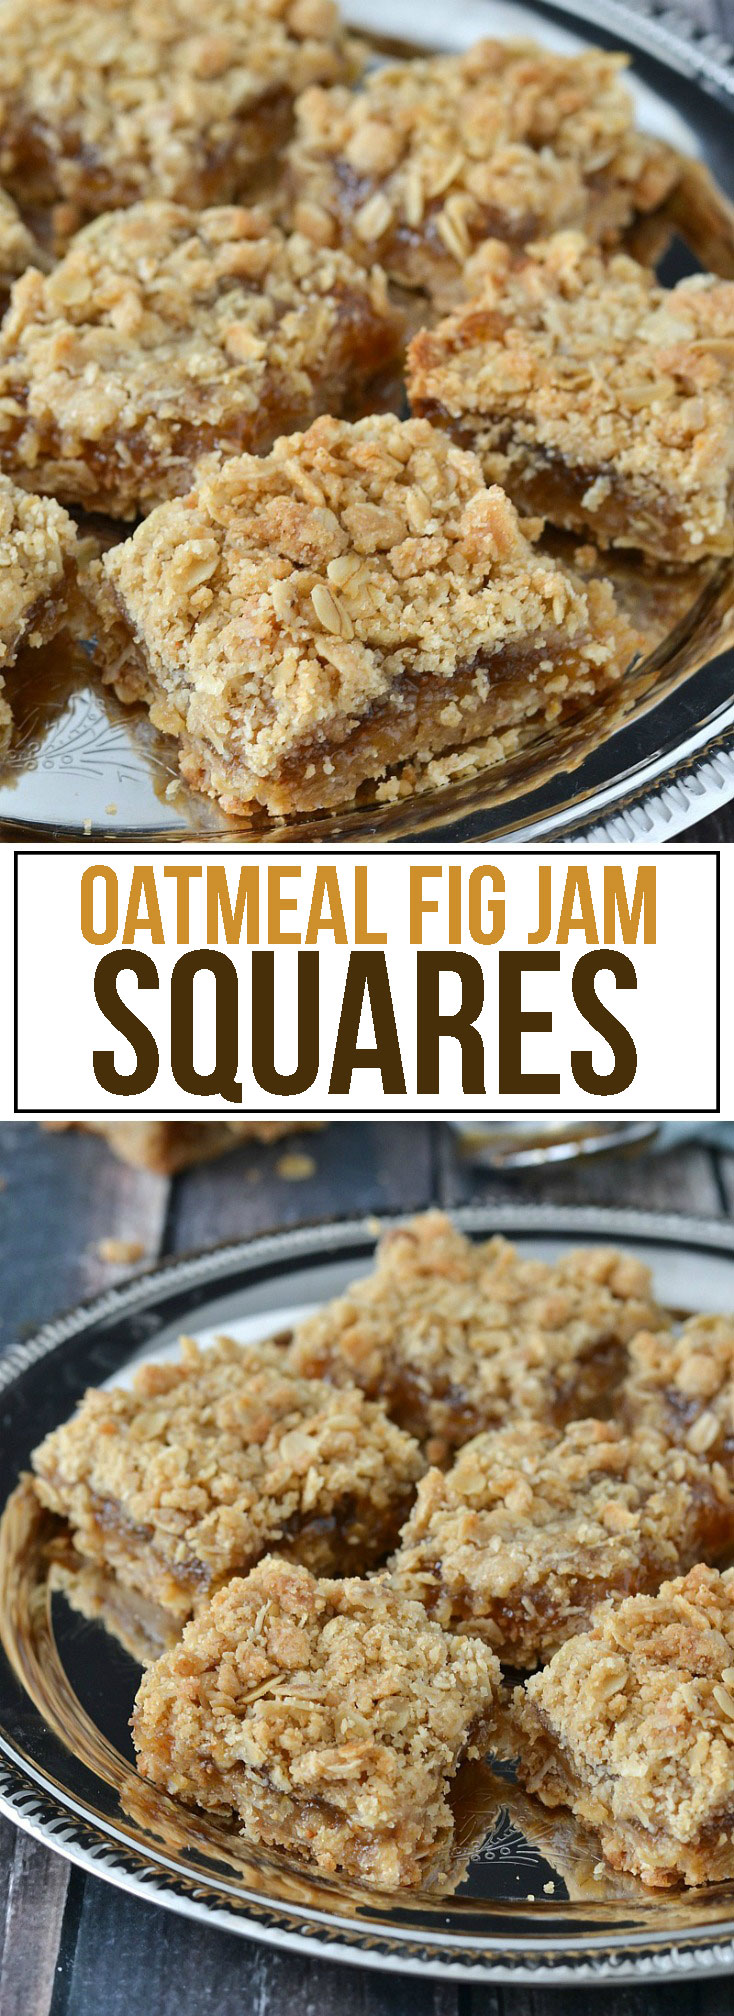 Oatmeal Fig Jam Squares